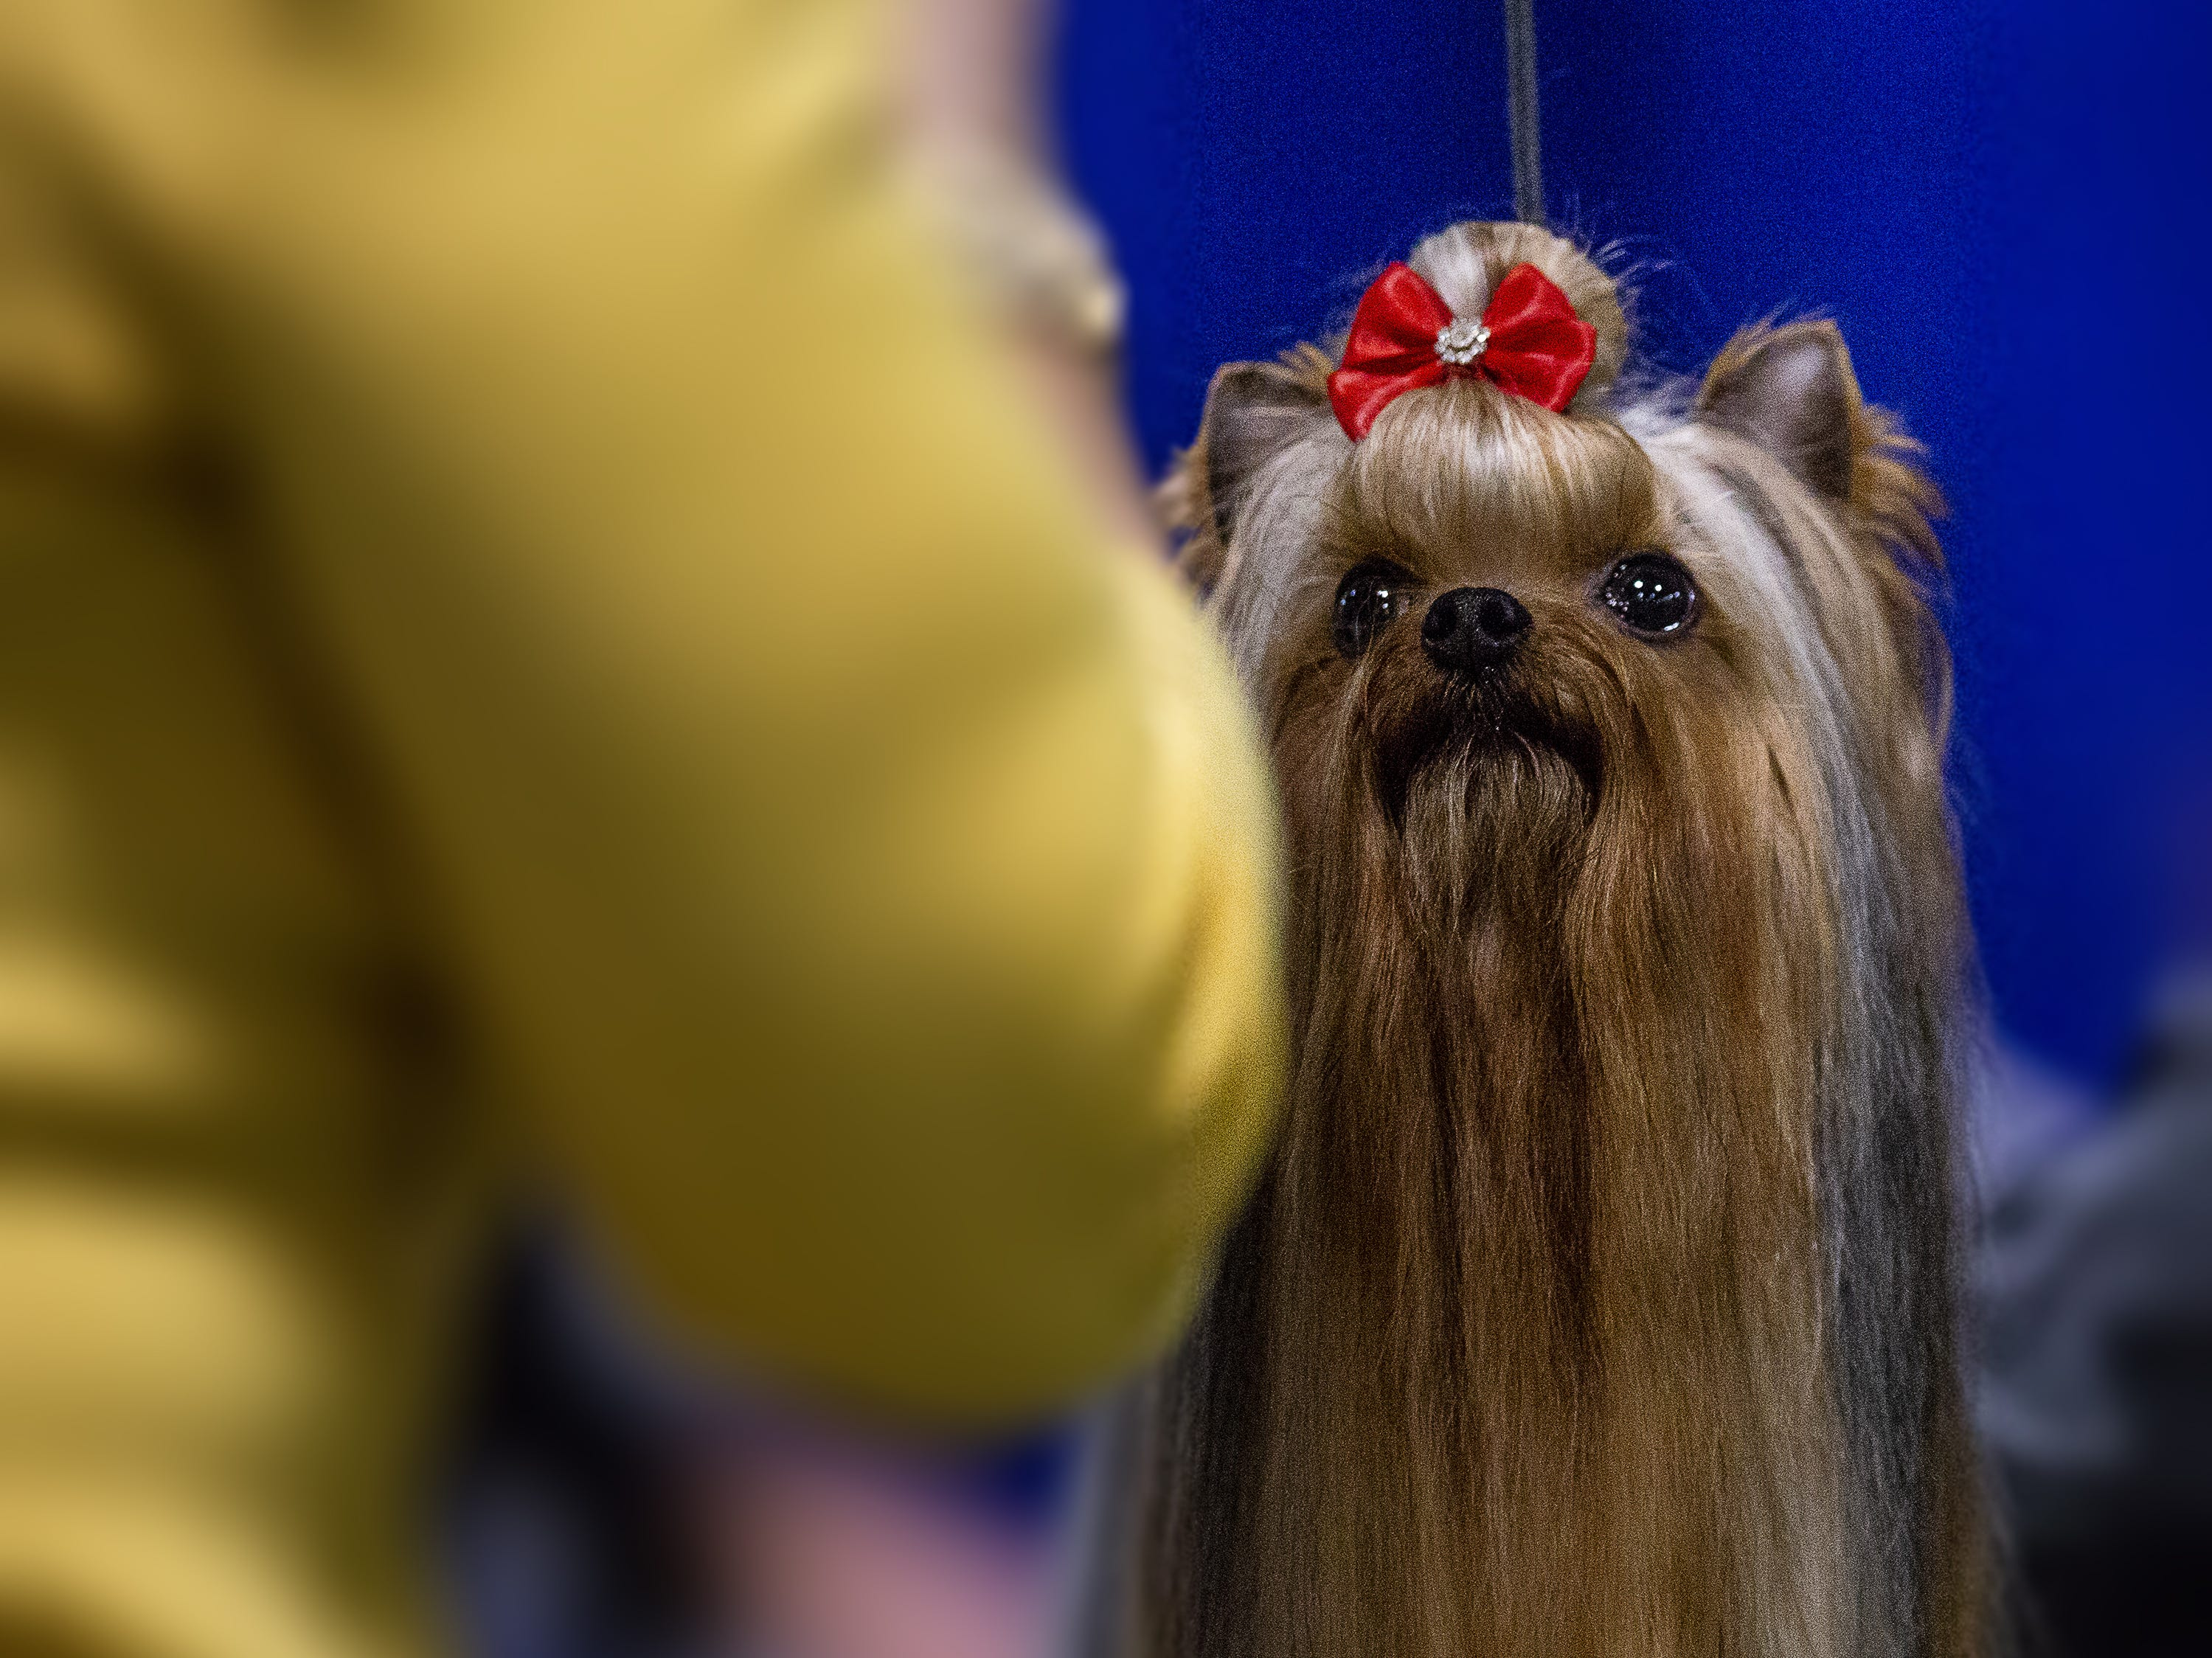 Nunu, a Yorkshire terrier, looks to her handler while being judged at the 2019 Kentuckiana Cluster of Dog Shows at the Kentucky Exposition Center. March 14, 2019.